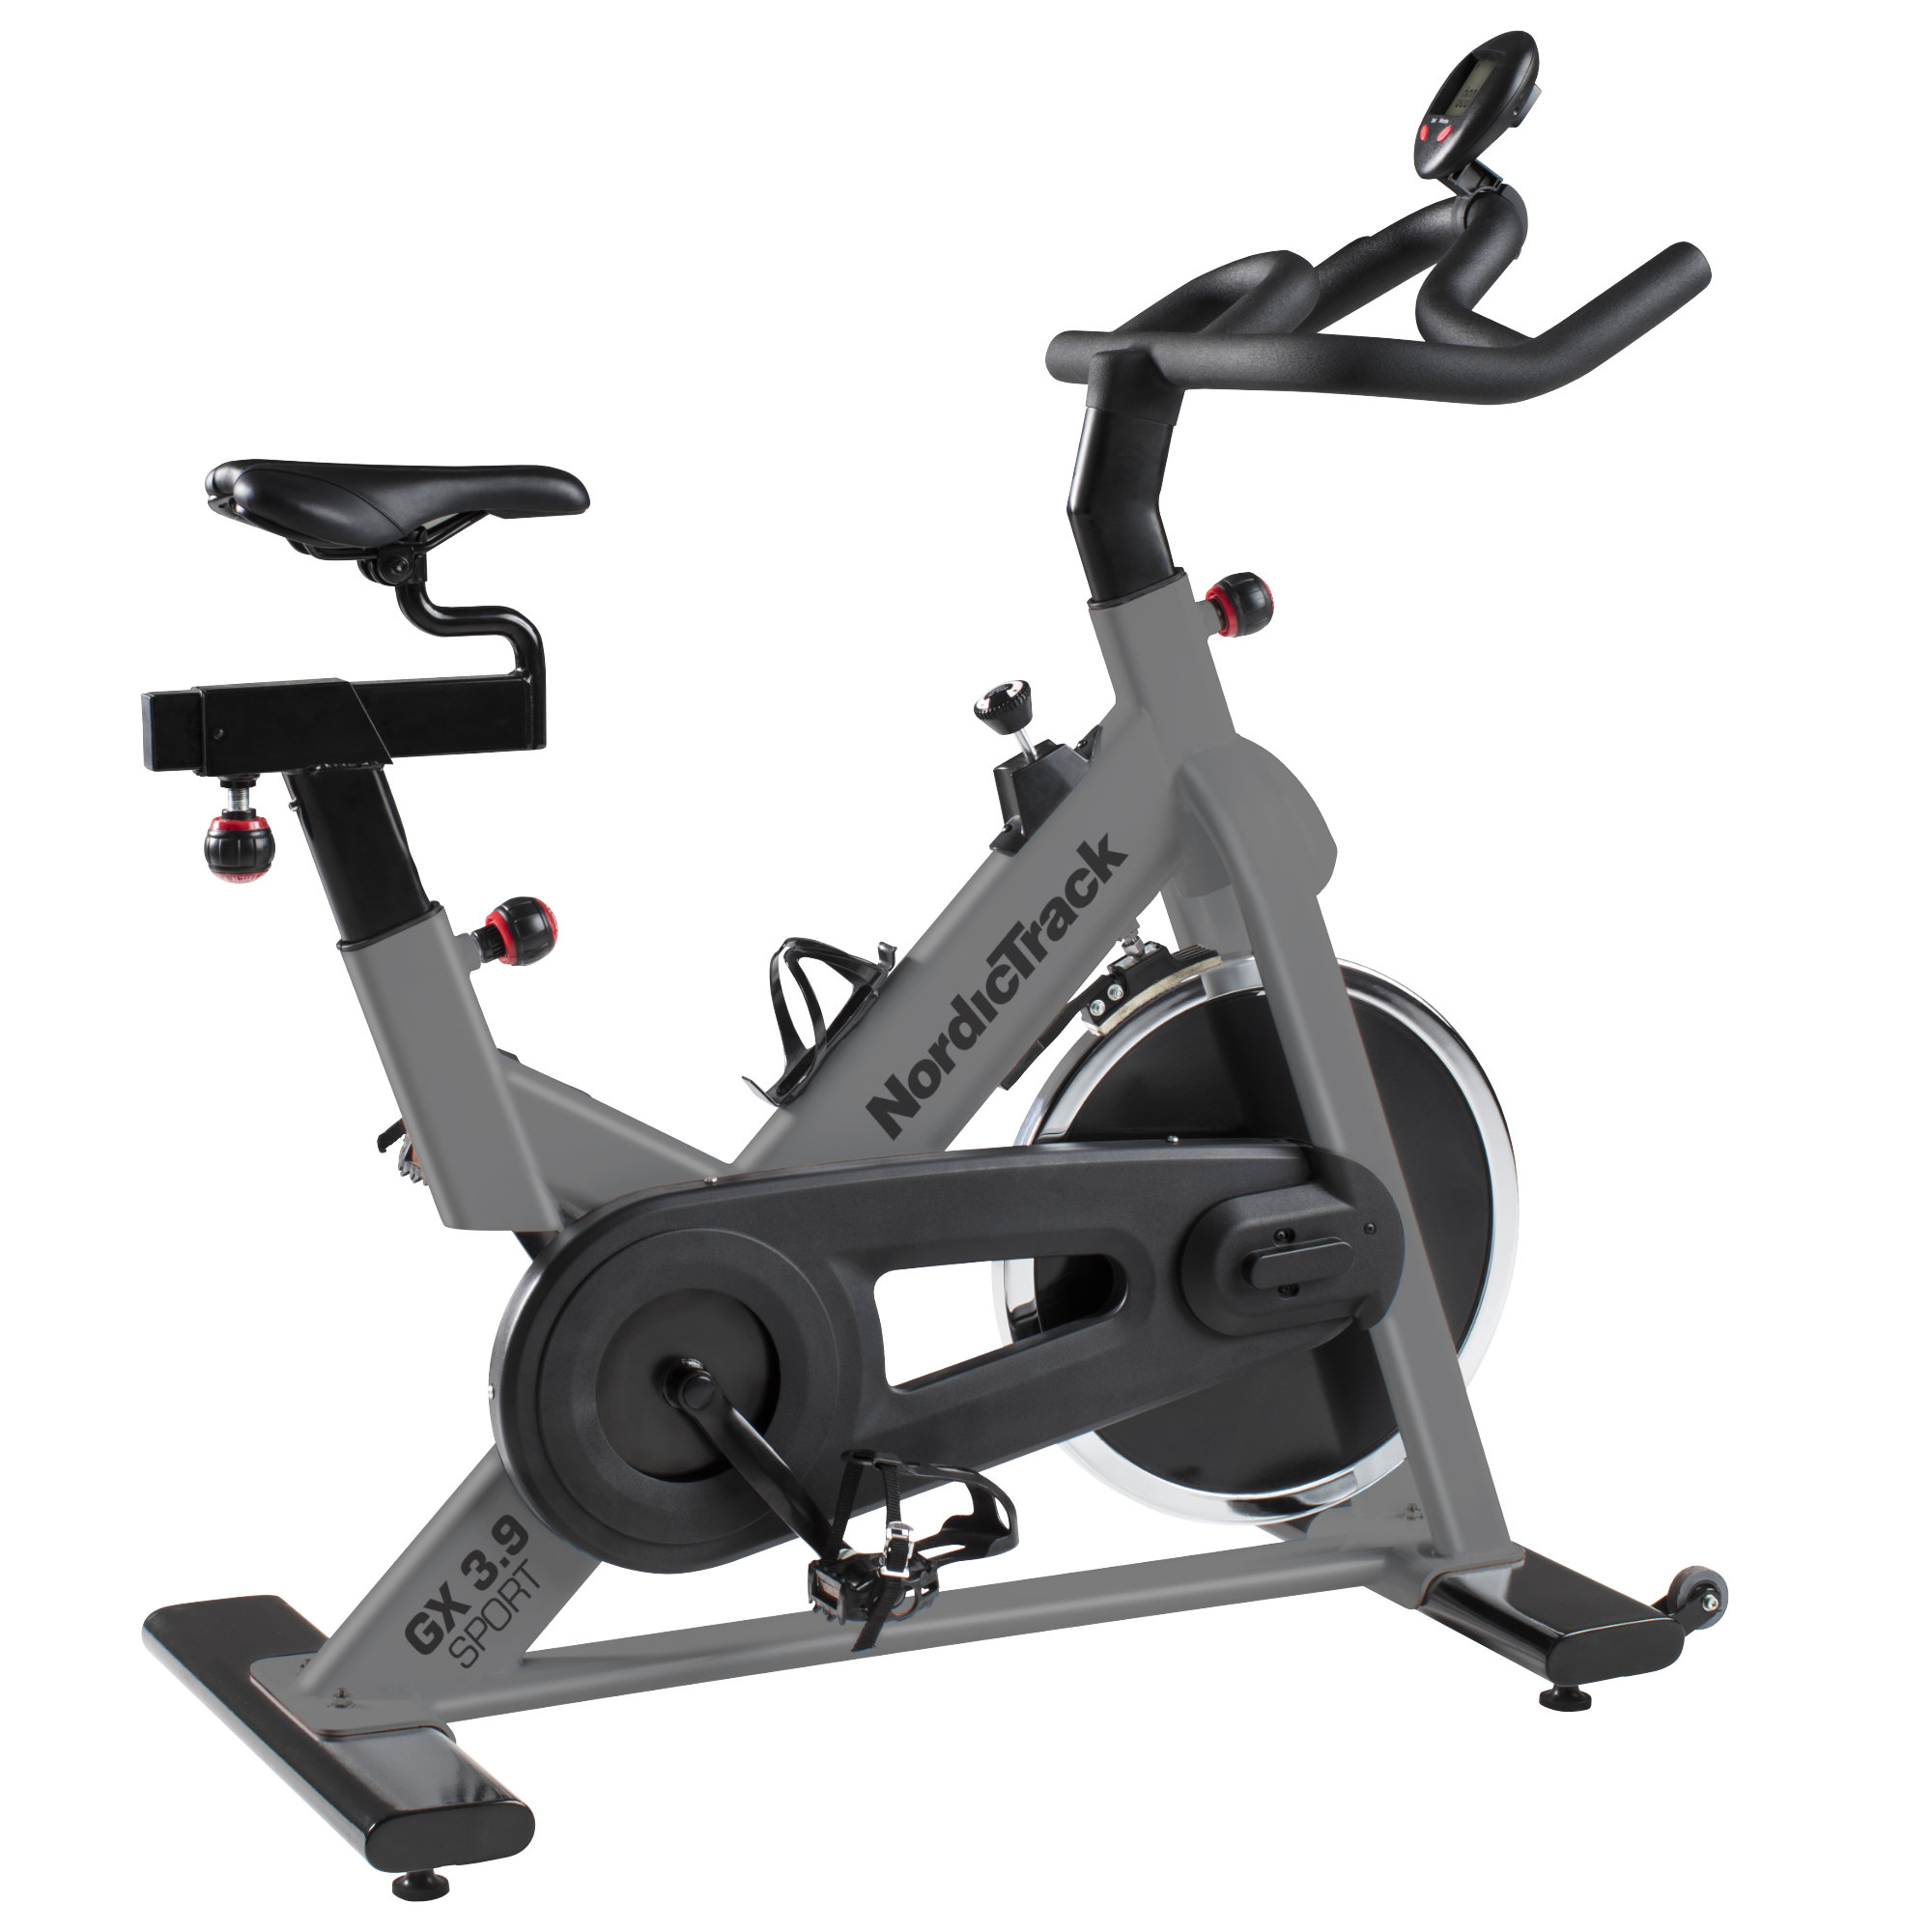 NordicTrack GX 3.9 Indoor Cycle